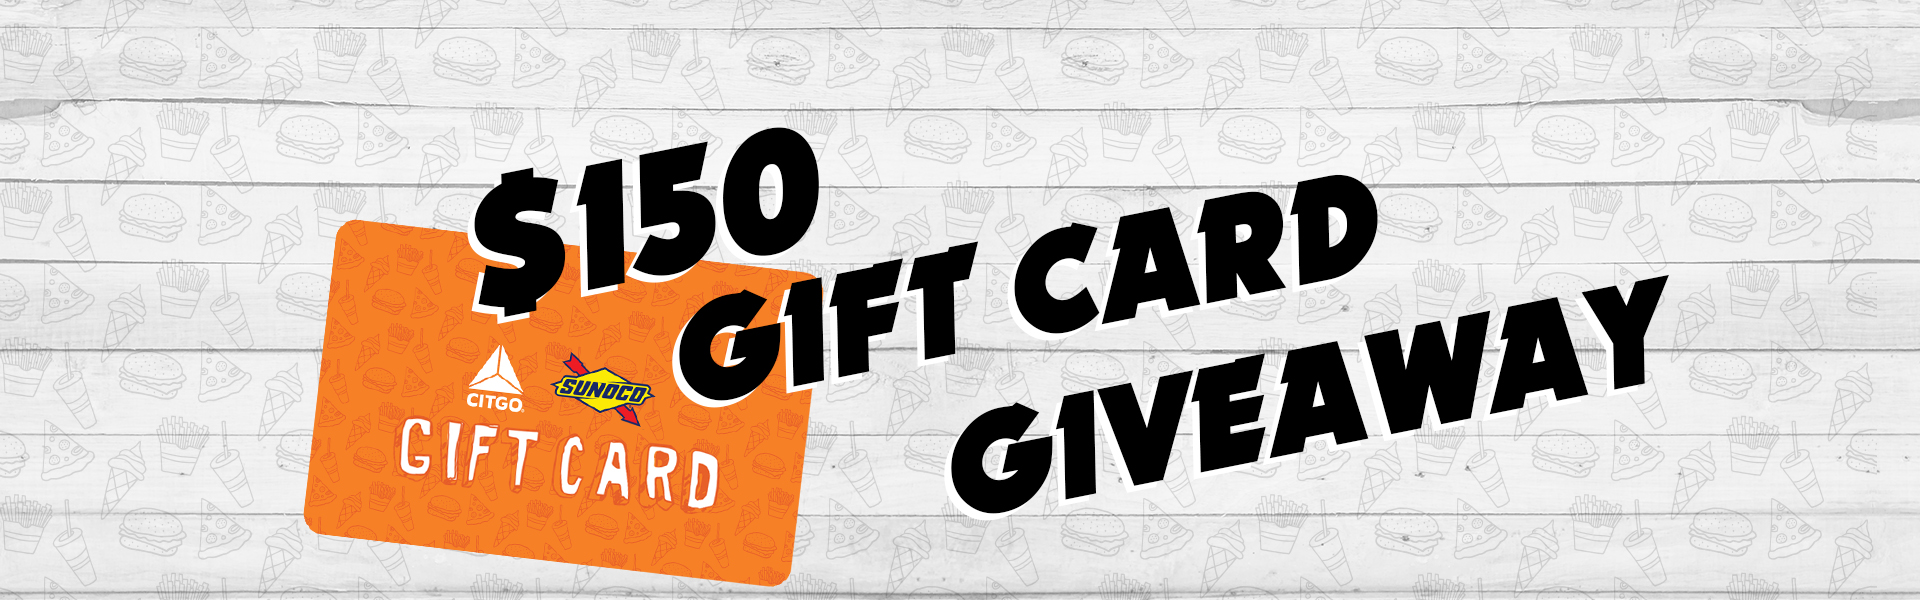 $150 gift card giveaway